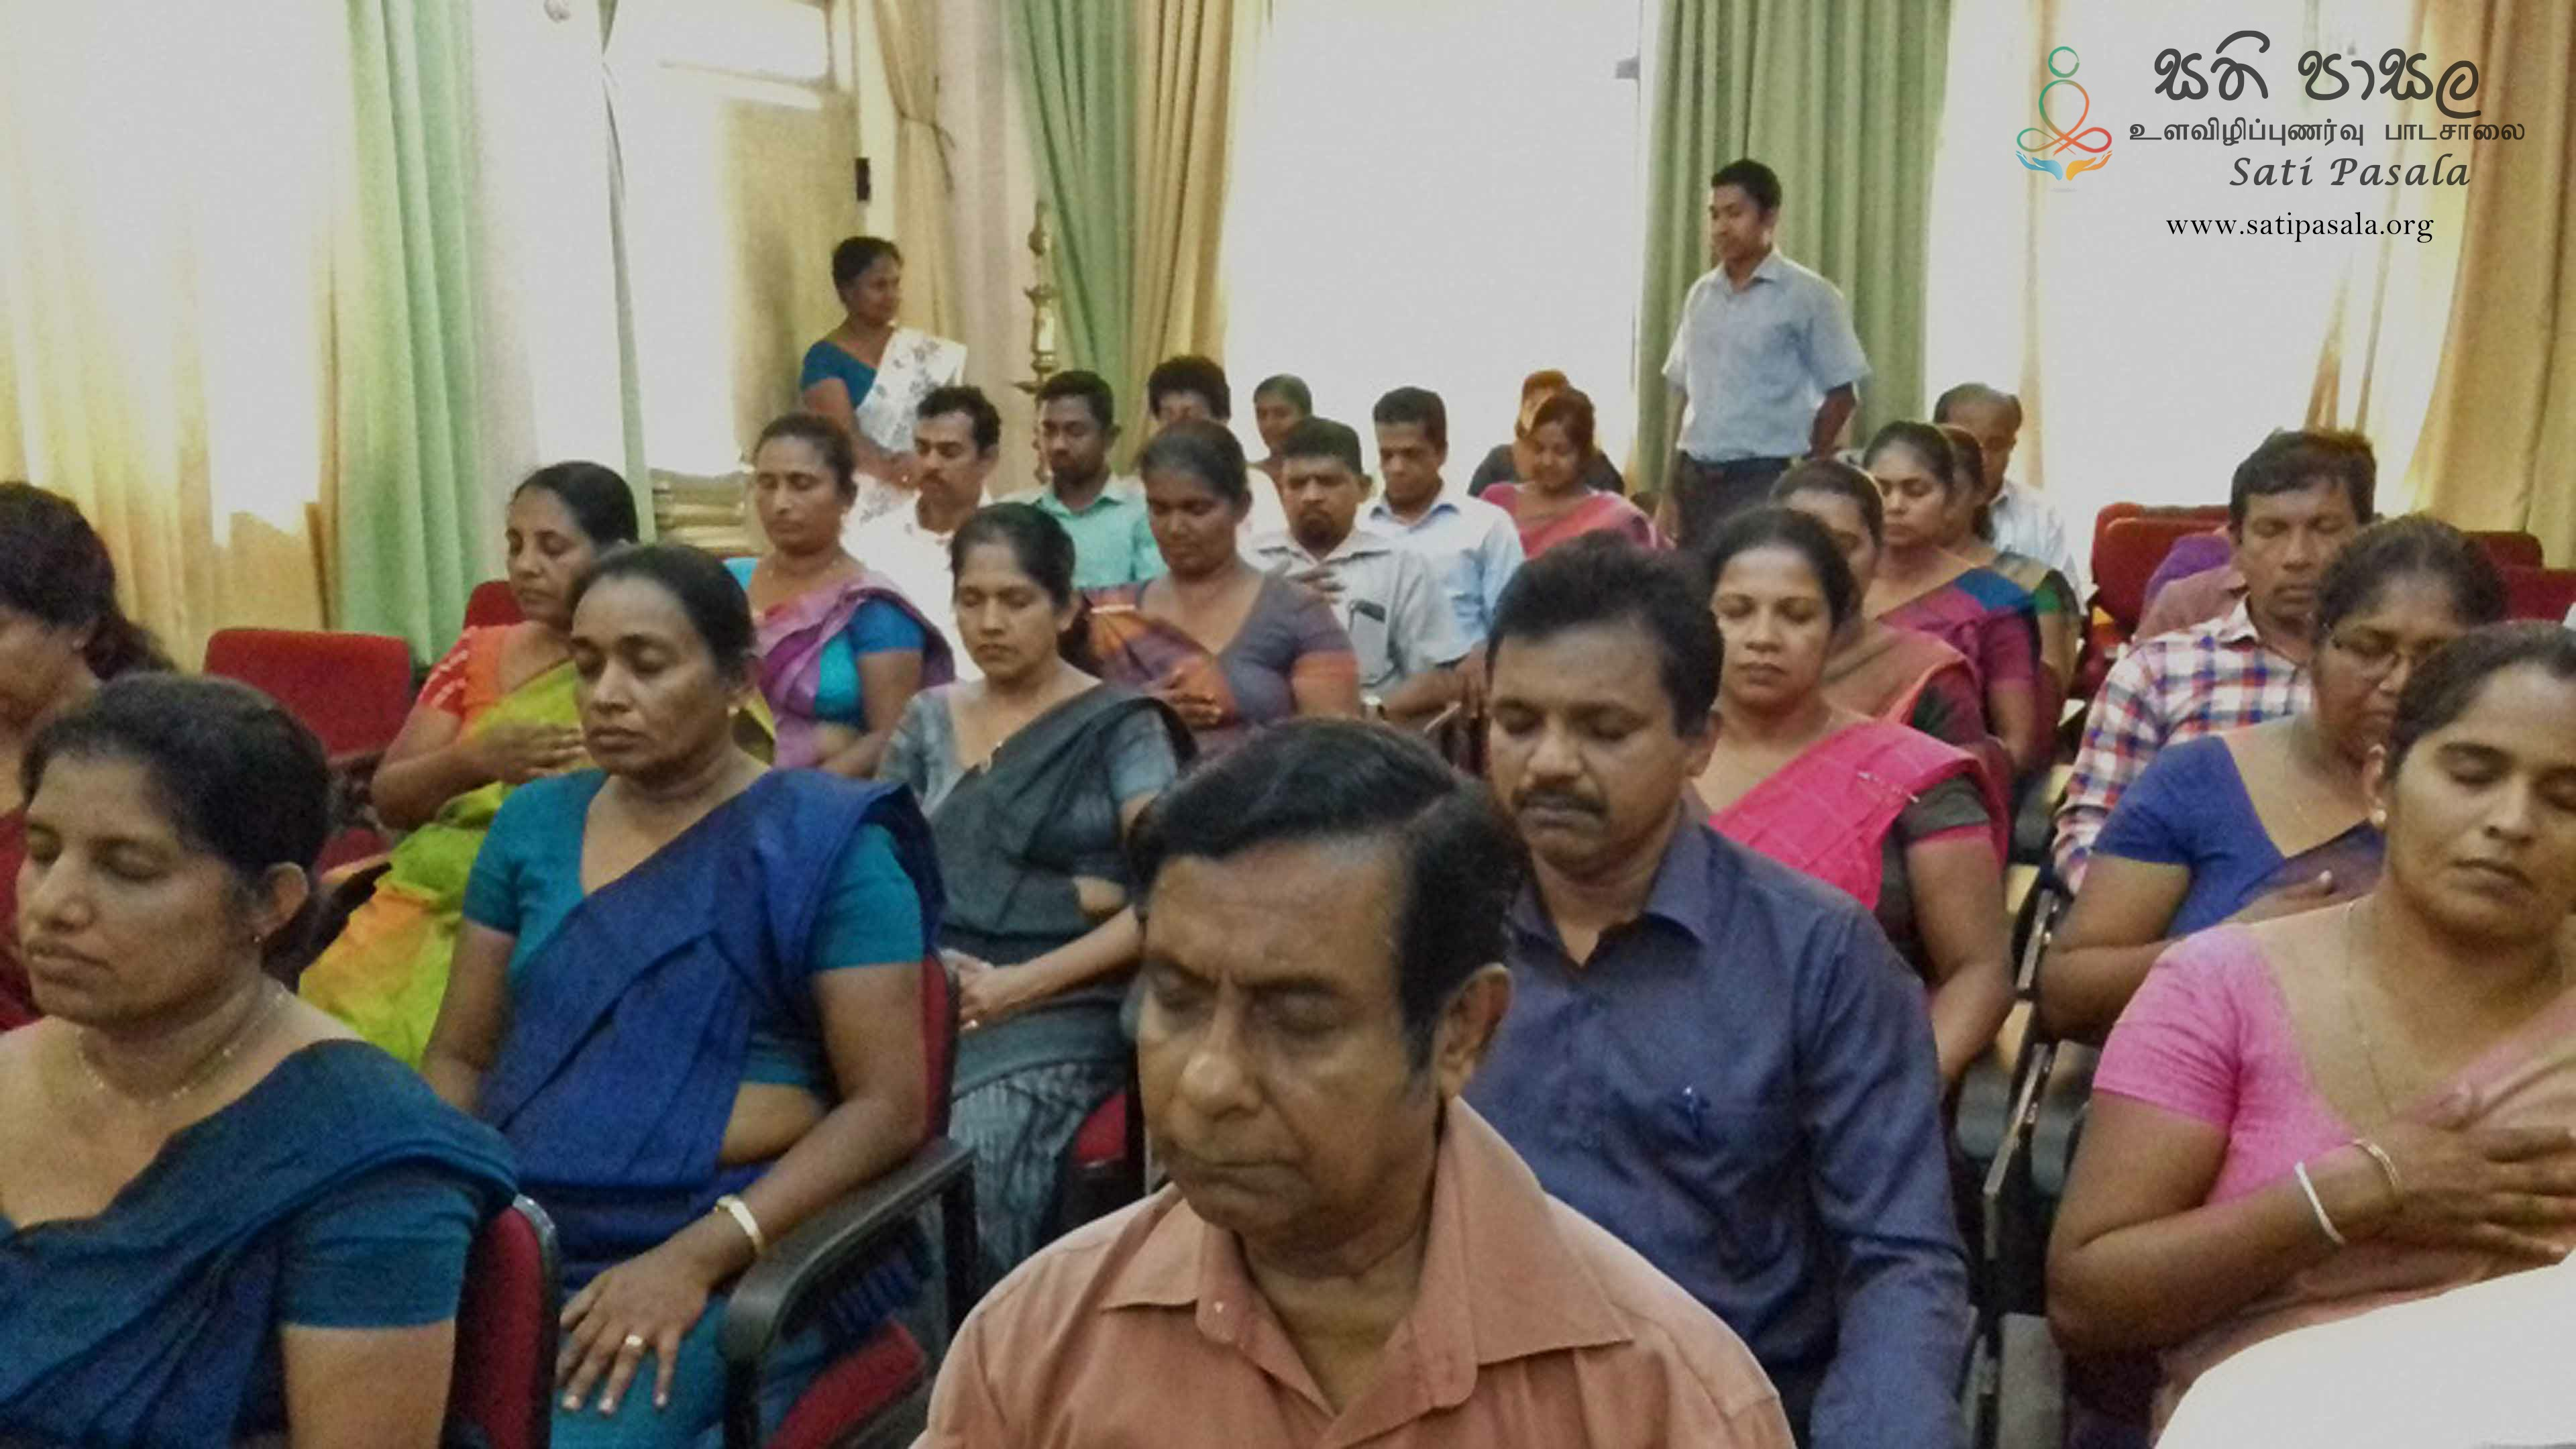 Sati Pasala at Department of Social Welfare, Probation and Child Care Service Affairs